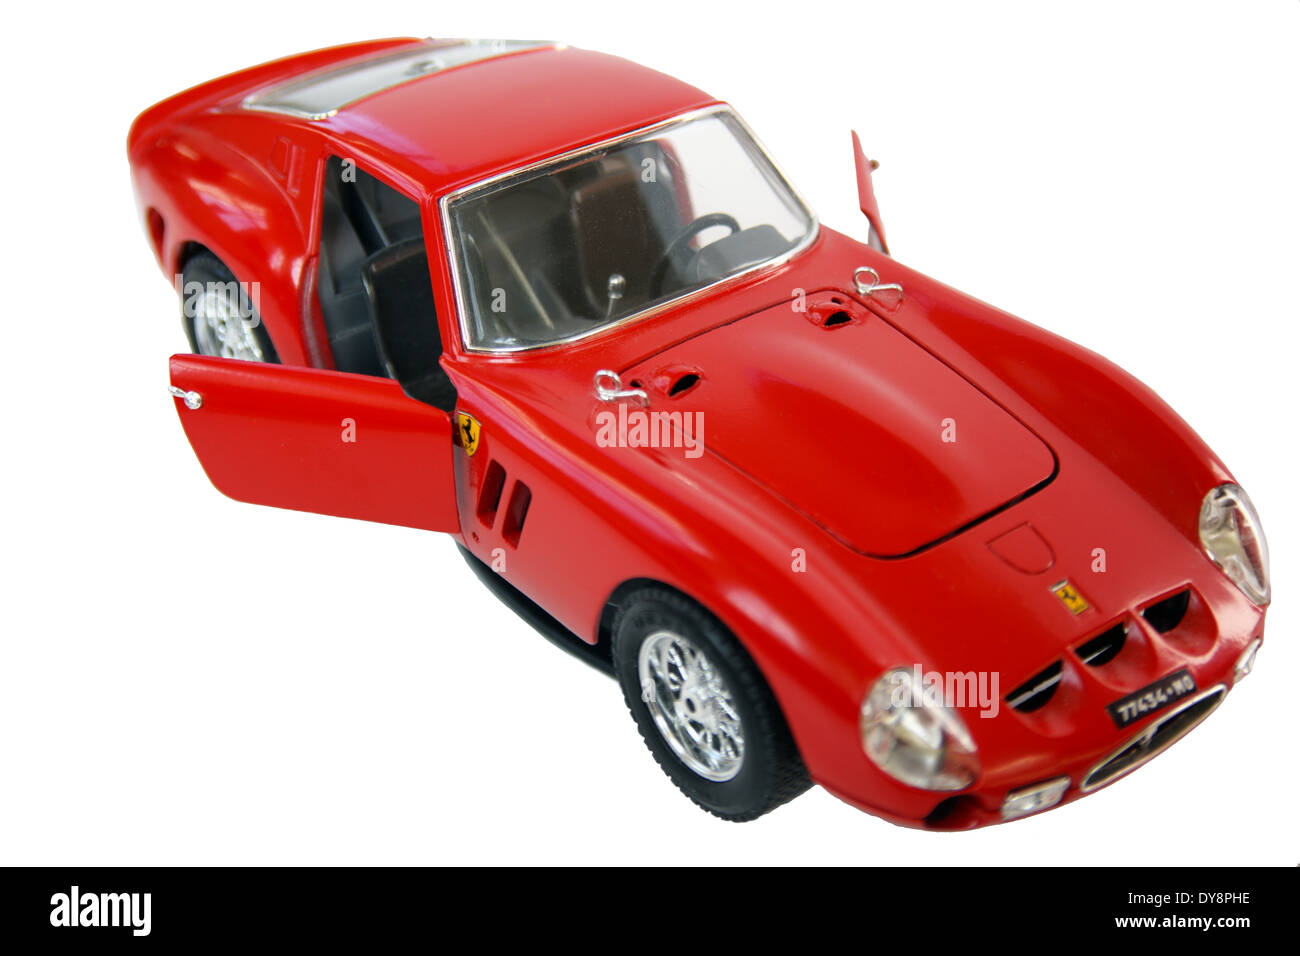 Ferrari GTO diecast 1962 model car by Burago isolated on a white background. - Stock Image